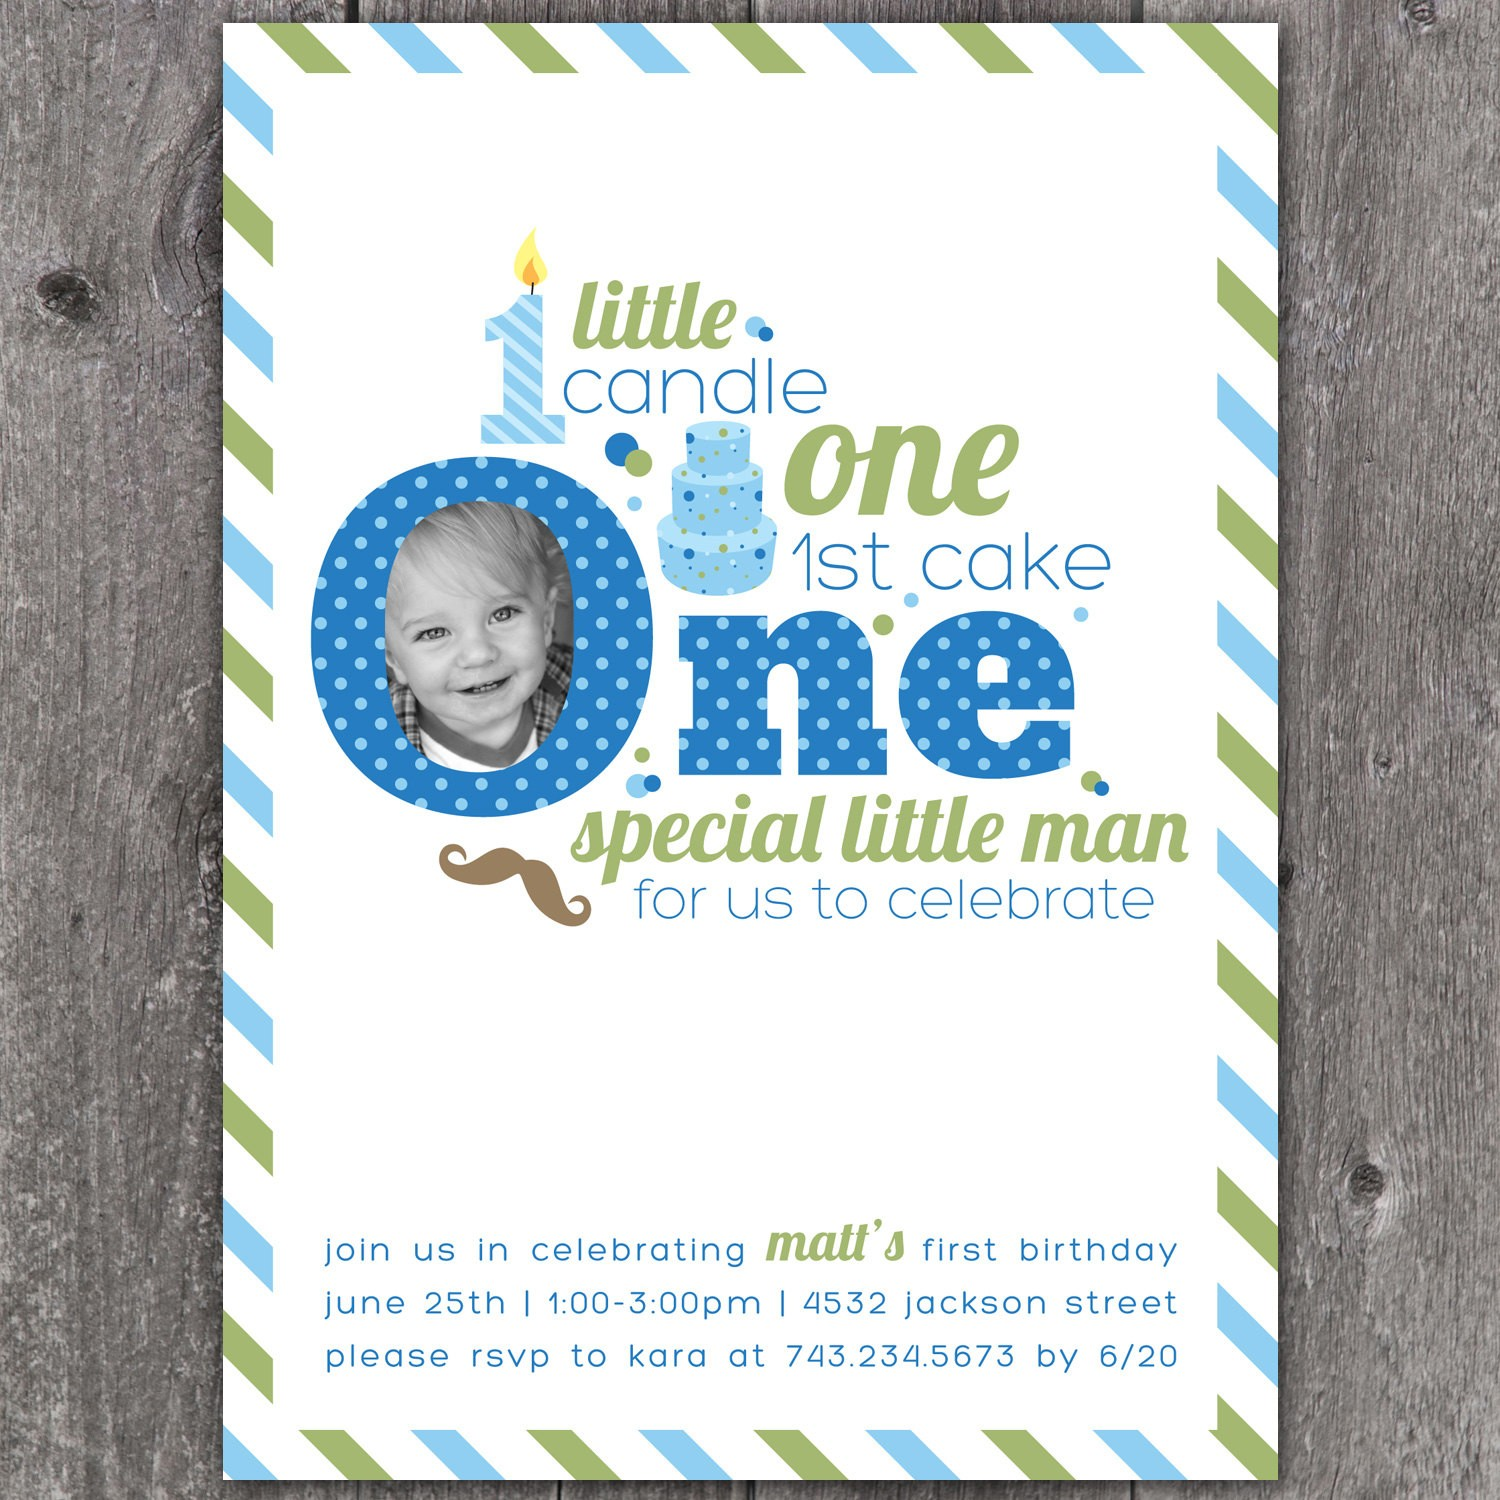 one year old birthday invitation templates ; invitation-templates-year-1-valid-free-birthday-invitation-for-1-year-old-boy-lovely-40th-birthday-of-invitation-templates-year-1